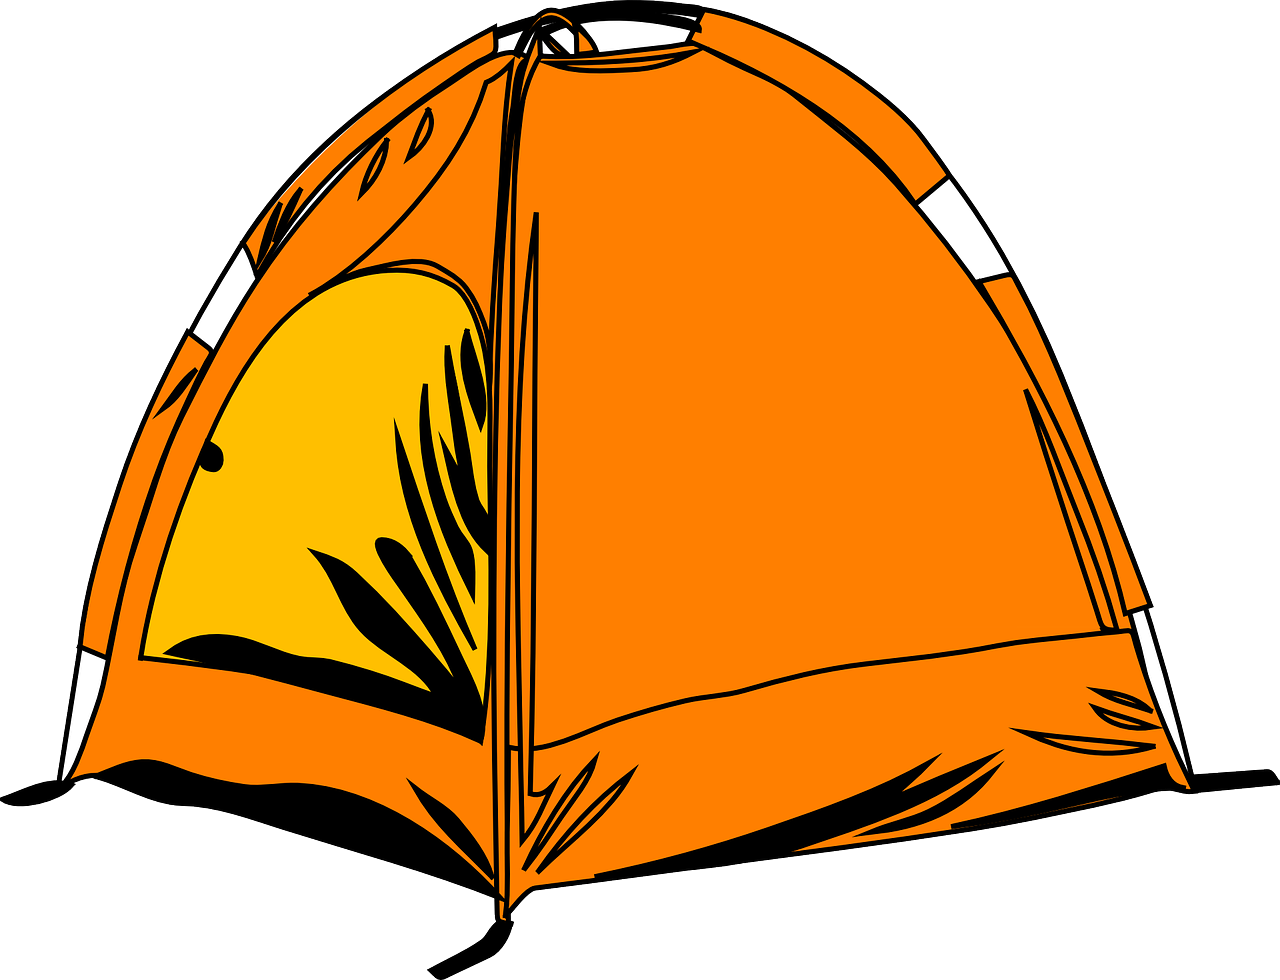 Rambles rants and writings. Clipart tent survival skill